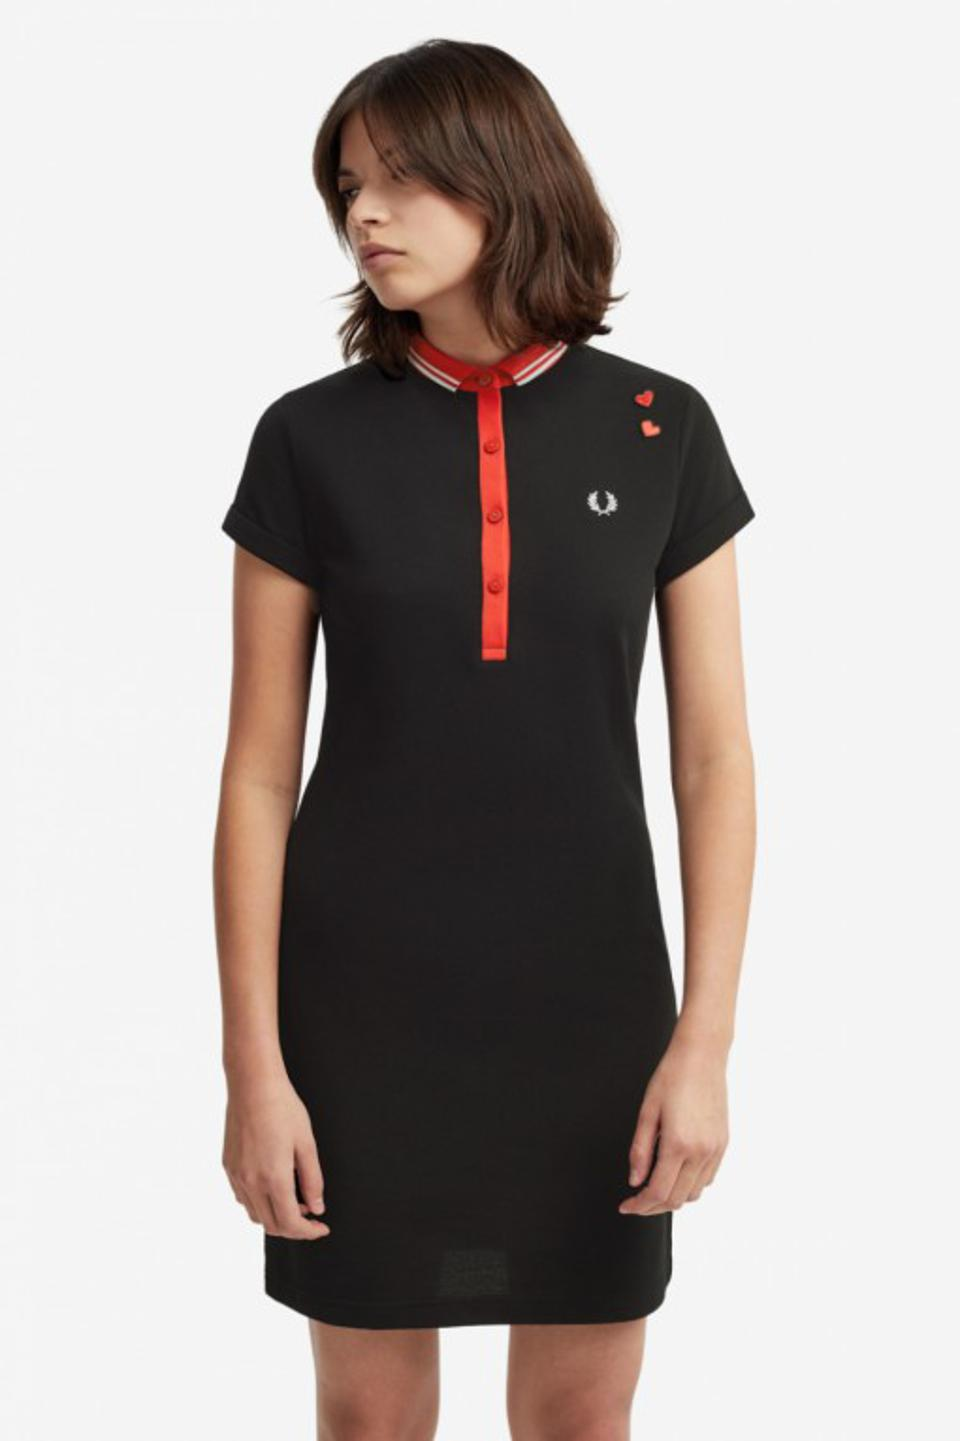 Tennis Dress by Fred Perry